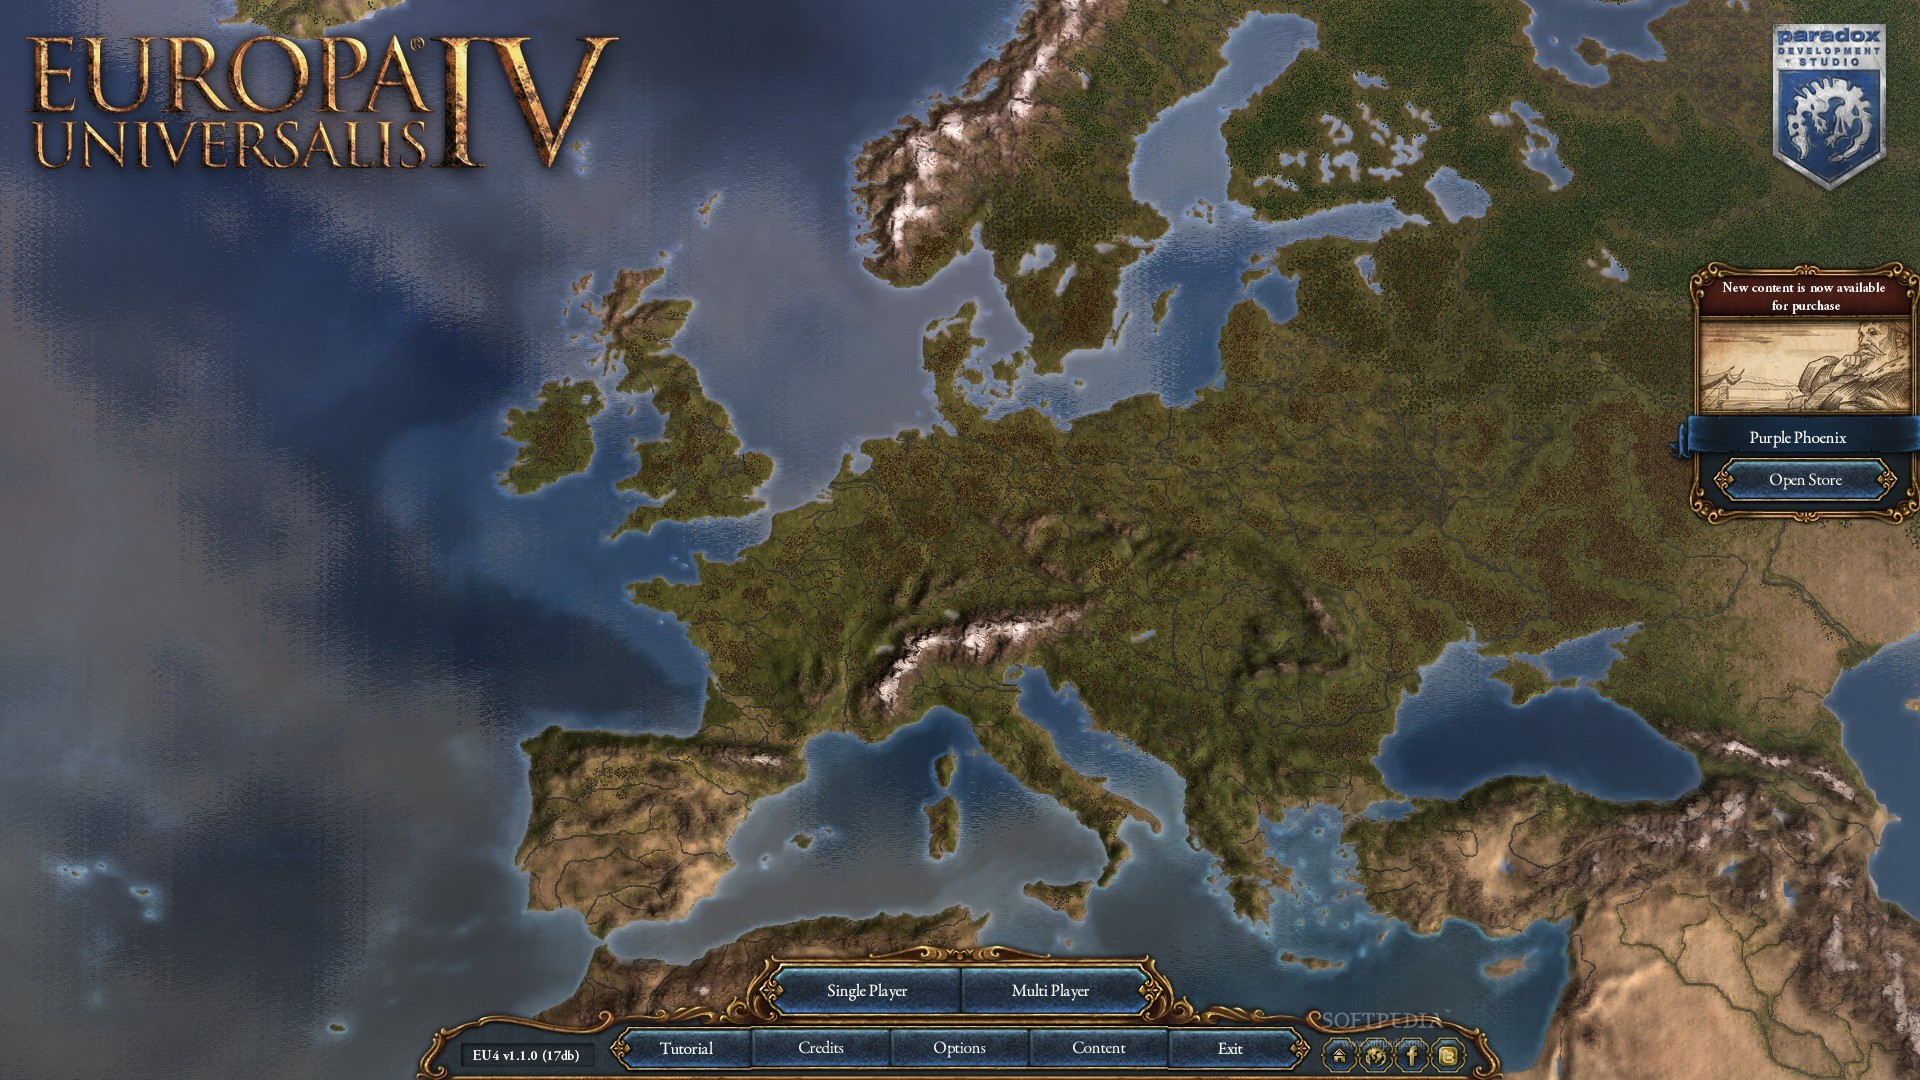 europa universalis iv available with a 75 discount on steam for linux